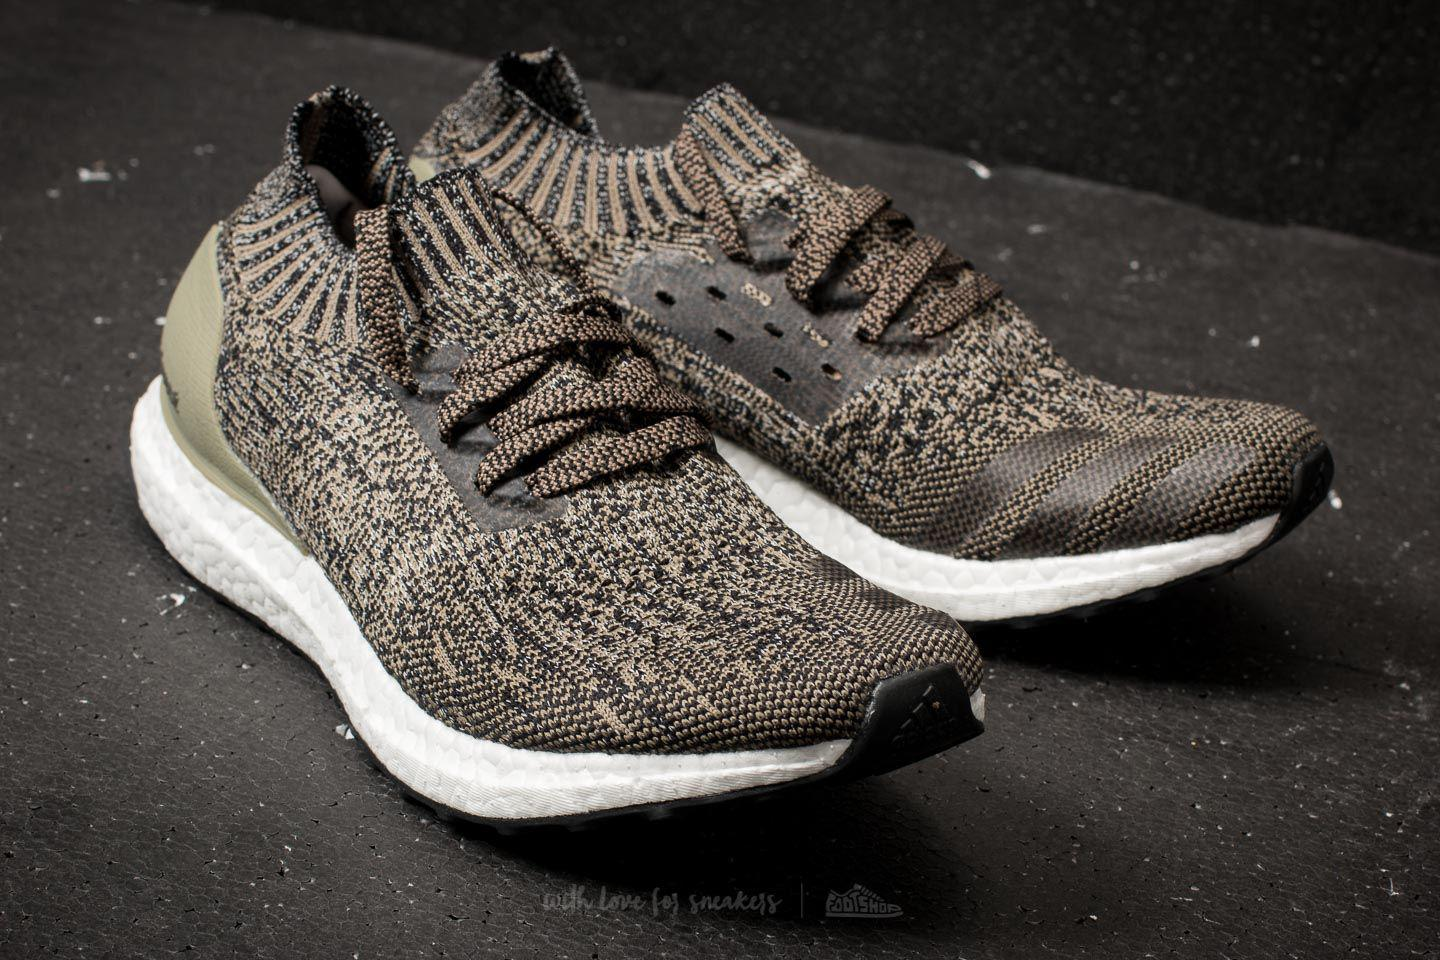 168755d9f496 Lyst - Footshop Adidas Ultraboost Uncaged Trace Cargo  Core Black ...